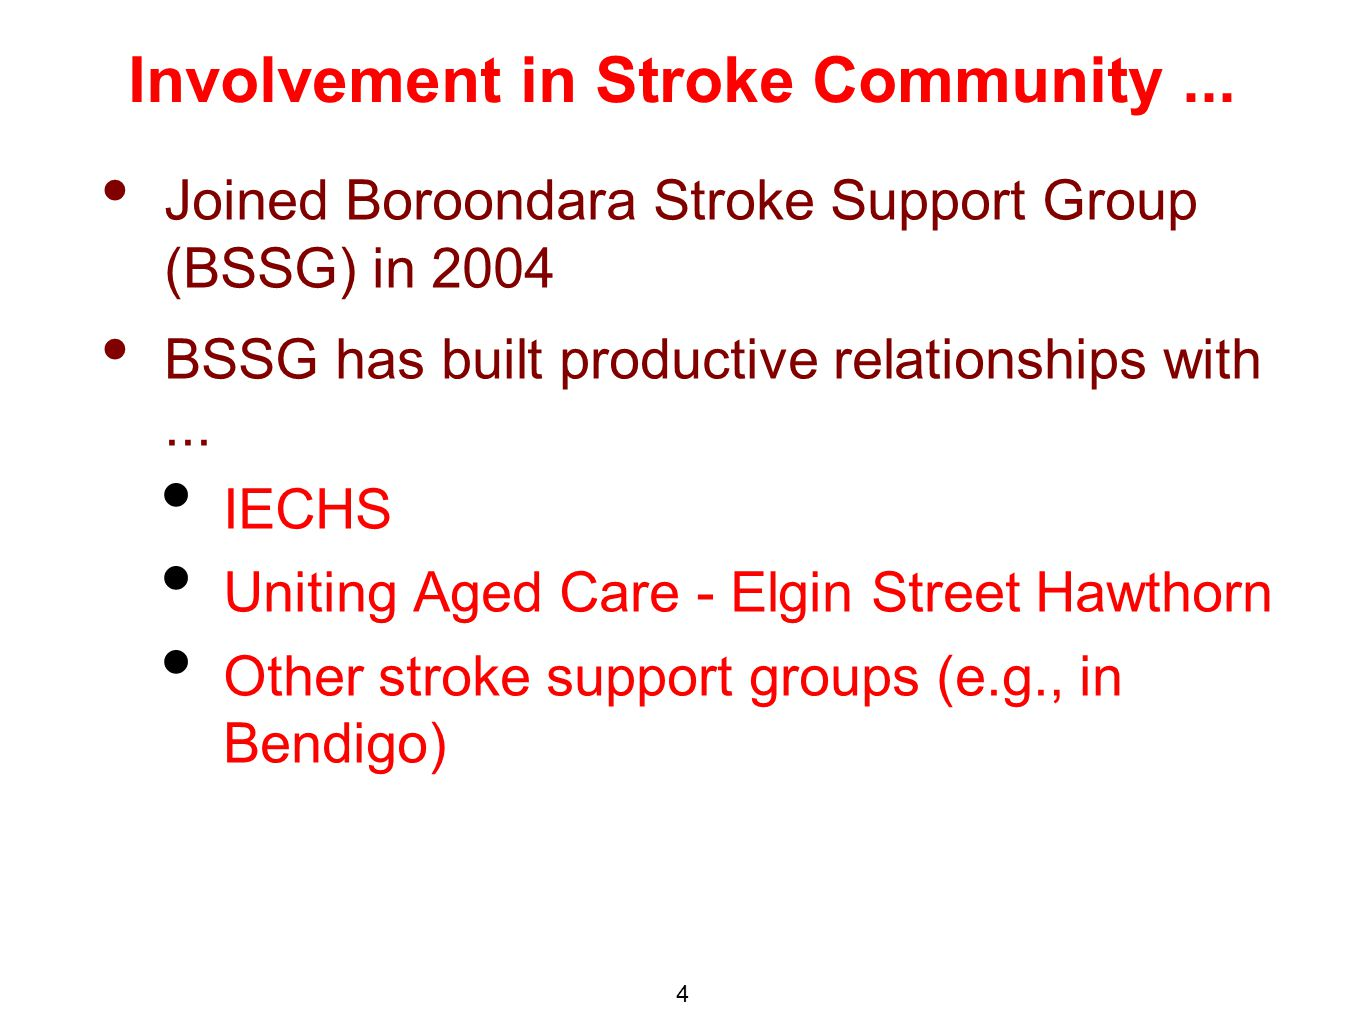 Joined Boroondara Stroke Support Group (BSSG) in 2004 BSSG has built productive relationships with...